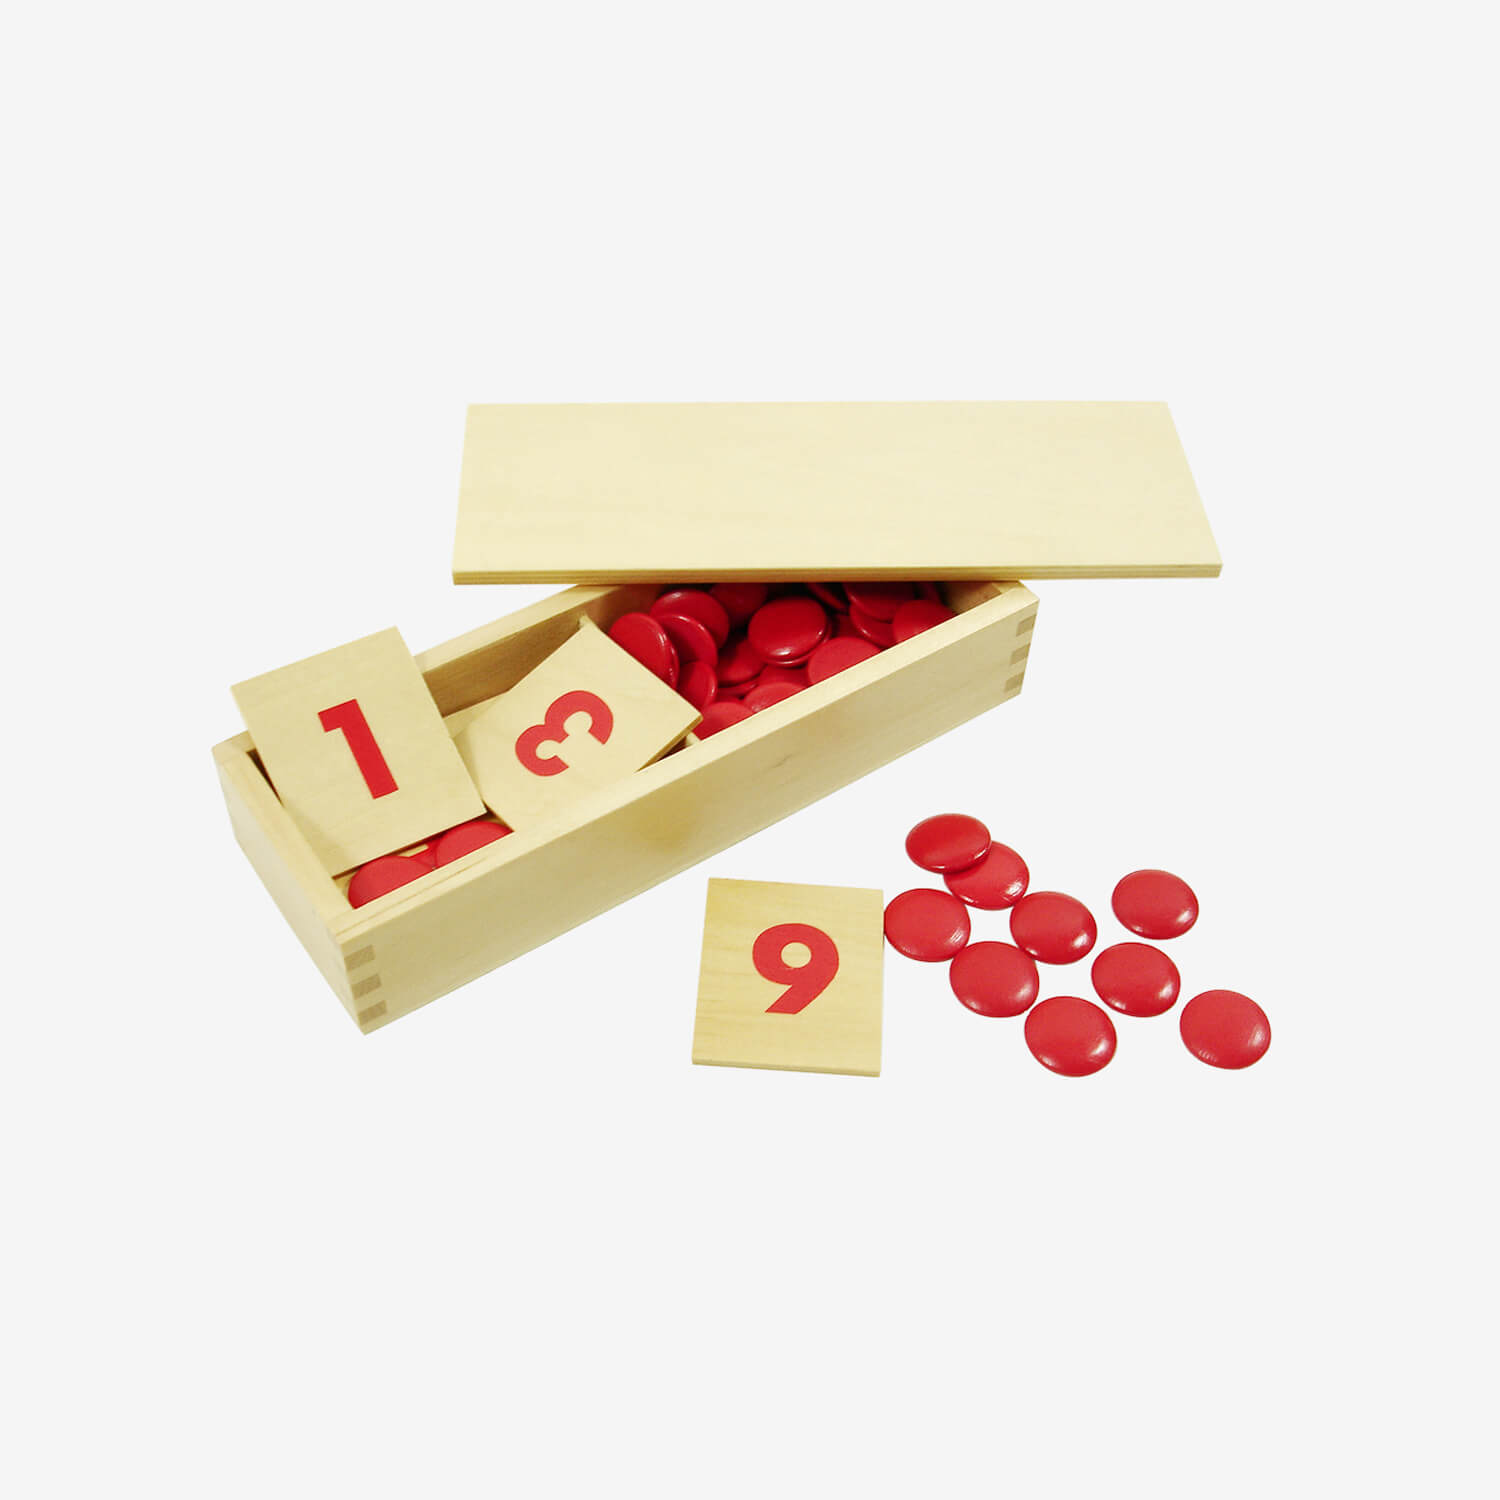 Number Cards And Counters